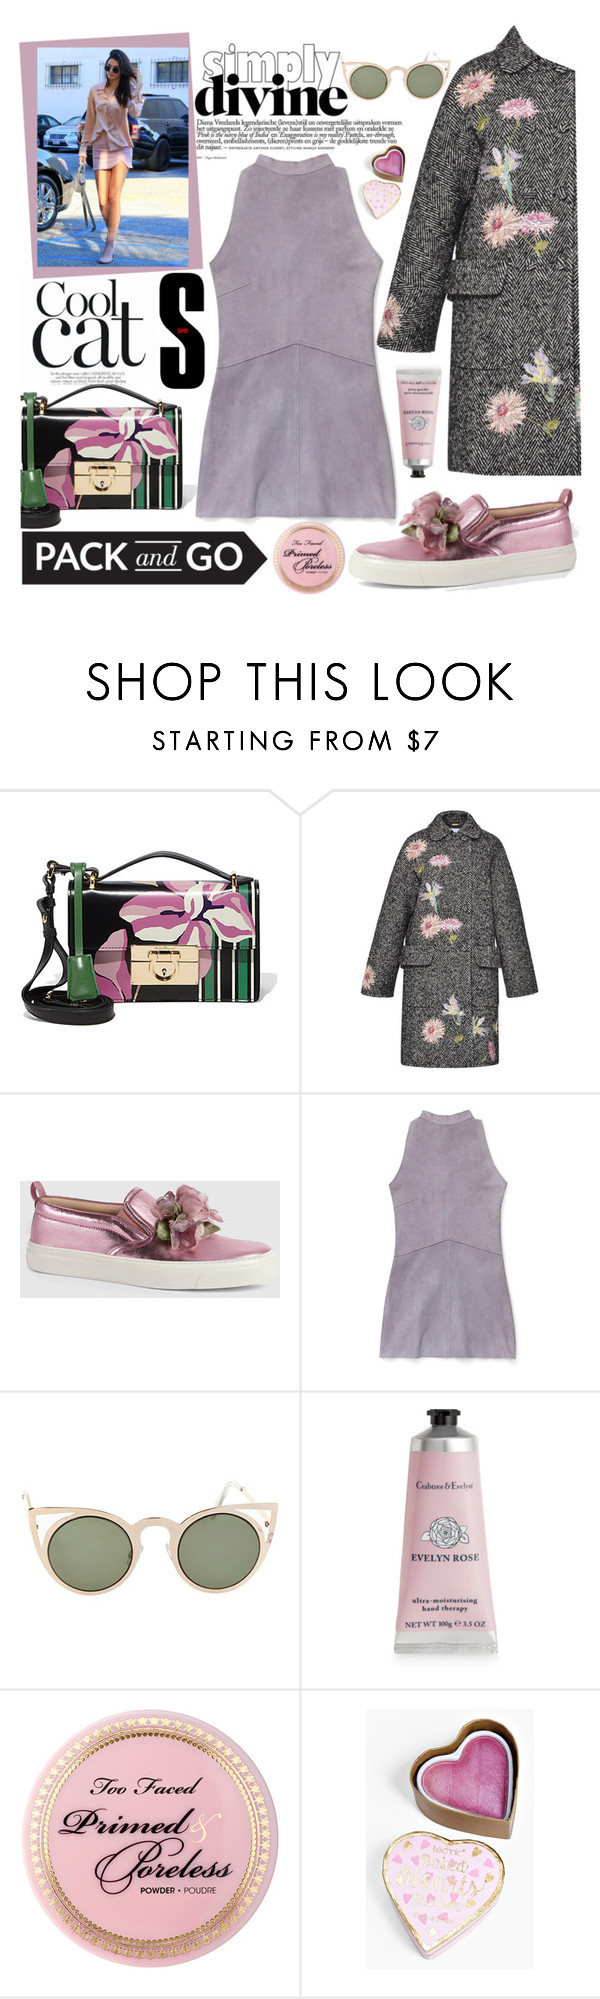 """""""Pack And Go - Milan"""" by bysc ❤ liked on Polyvore featuring Salvatore Ferragamo, Blumarine, Gucci, Rebecca Minkoff, Betsey Johnson, Therapy, Boohoo, women's clothing, women and female"""